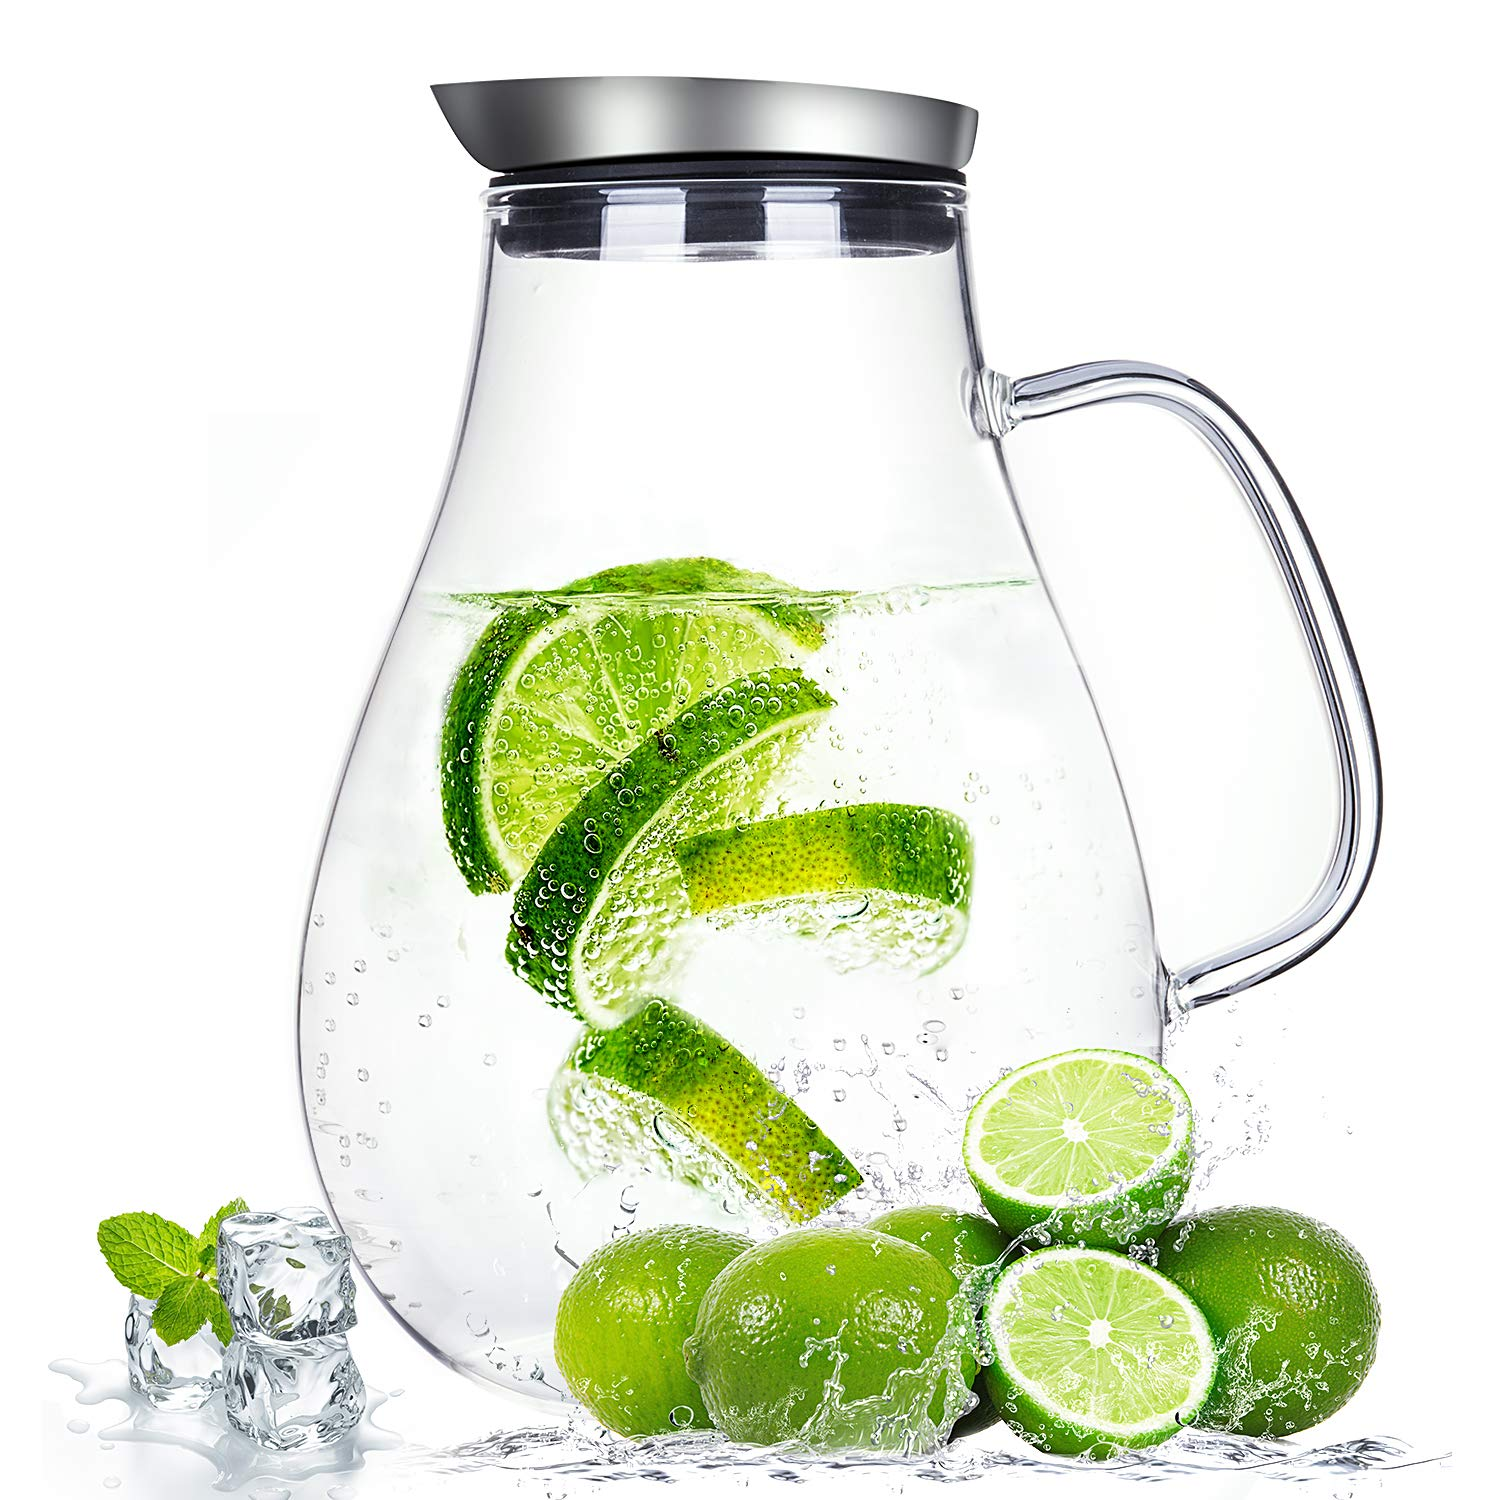 2.0 Liter Glass Pitcher with Lid, Water Carafe Jug for Hot/Cold Water, Ice Tea and Juice Beverage by susteas (Image #1)